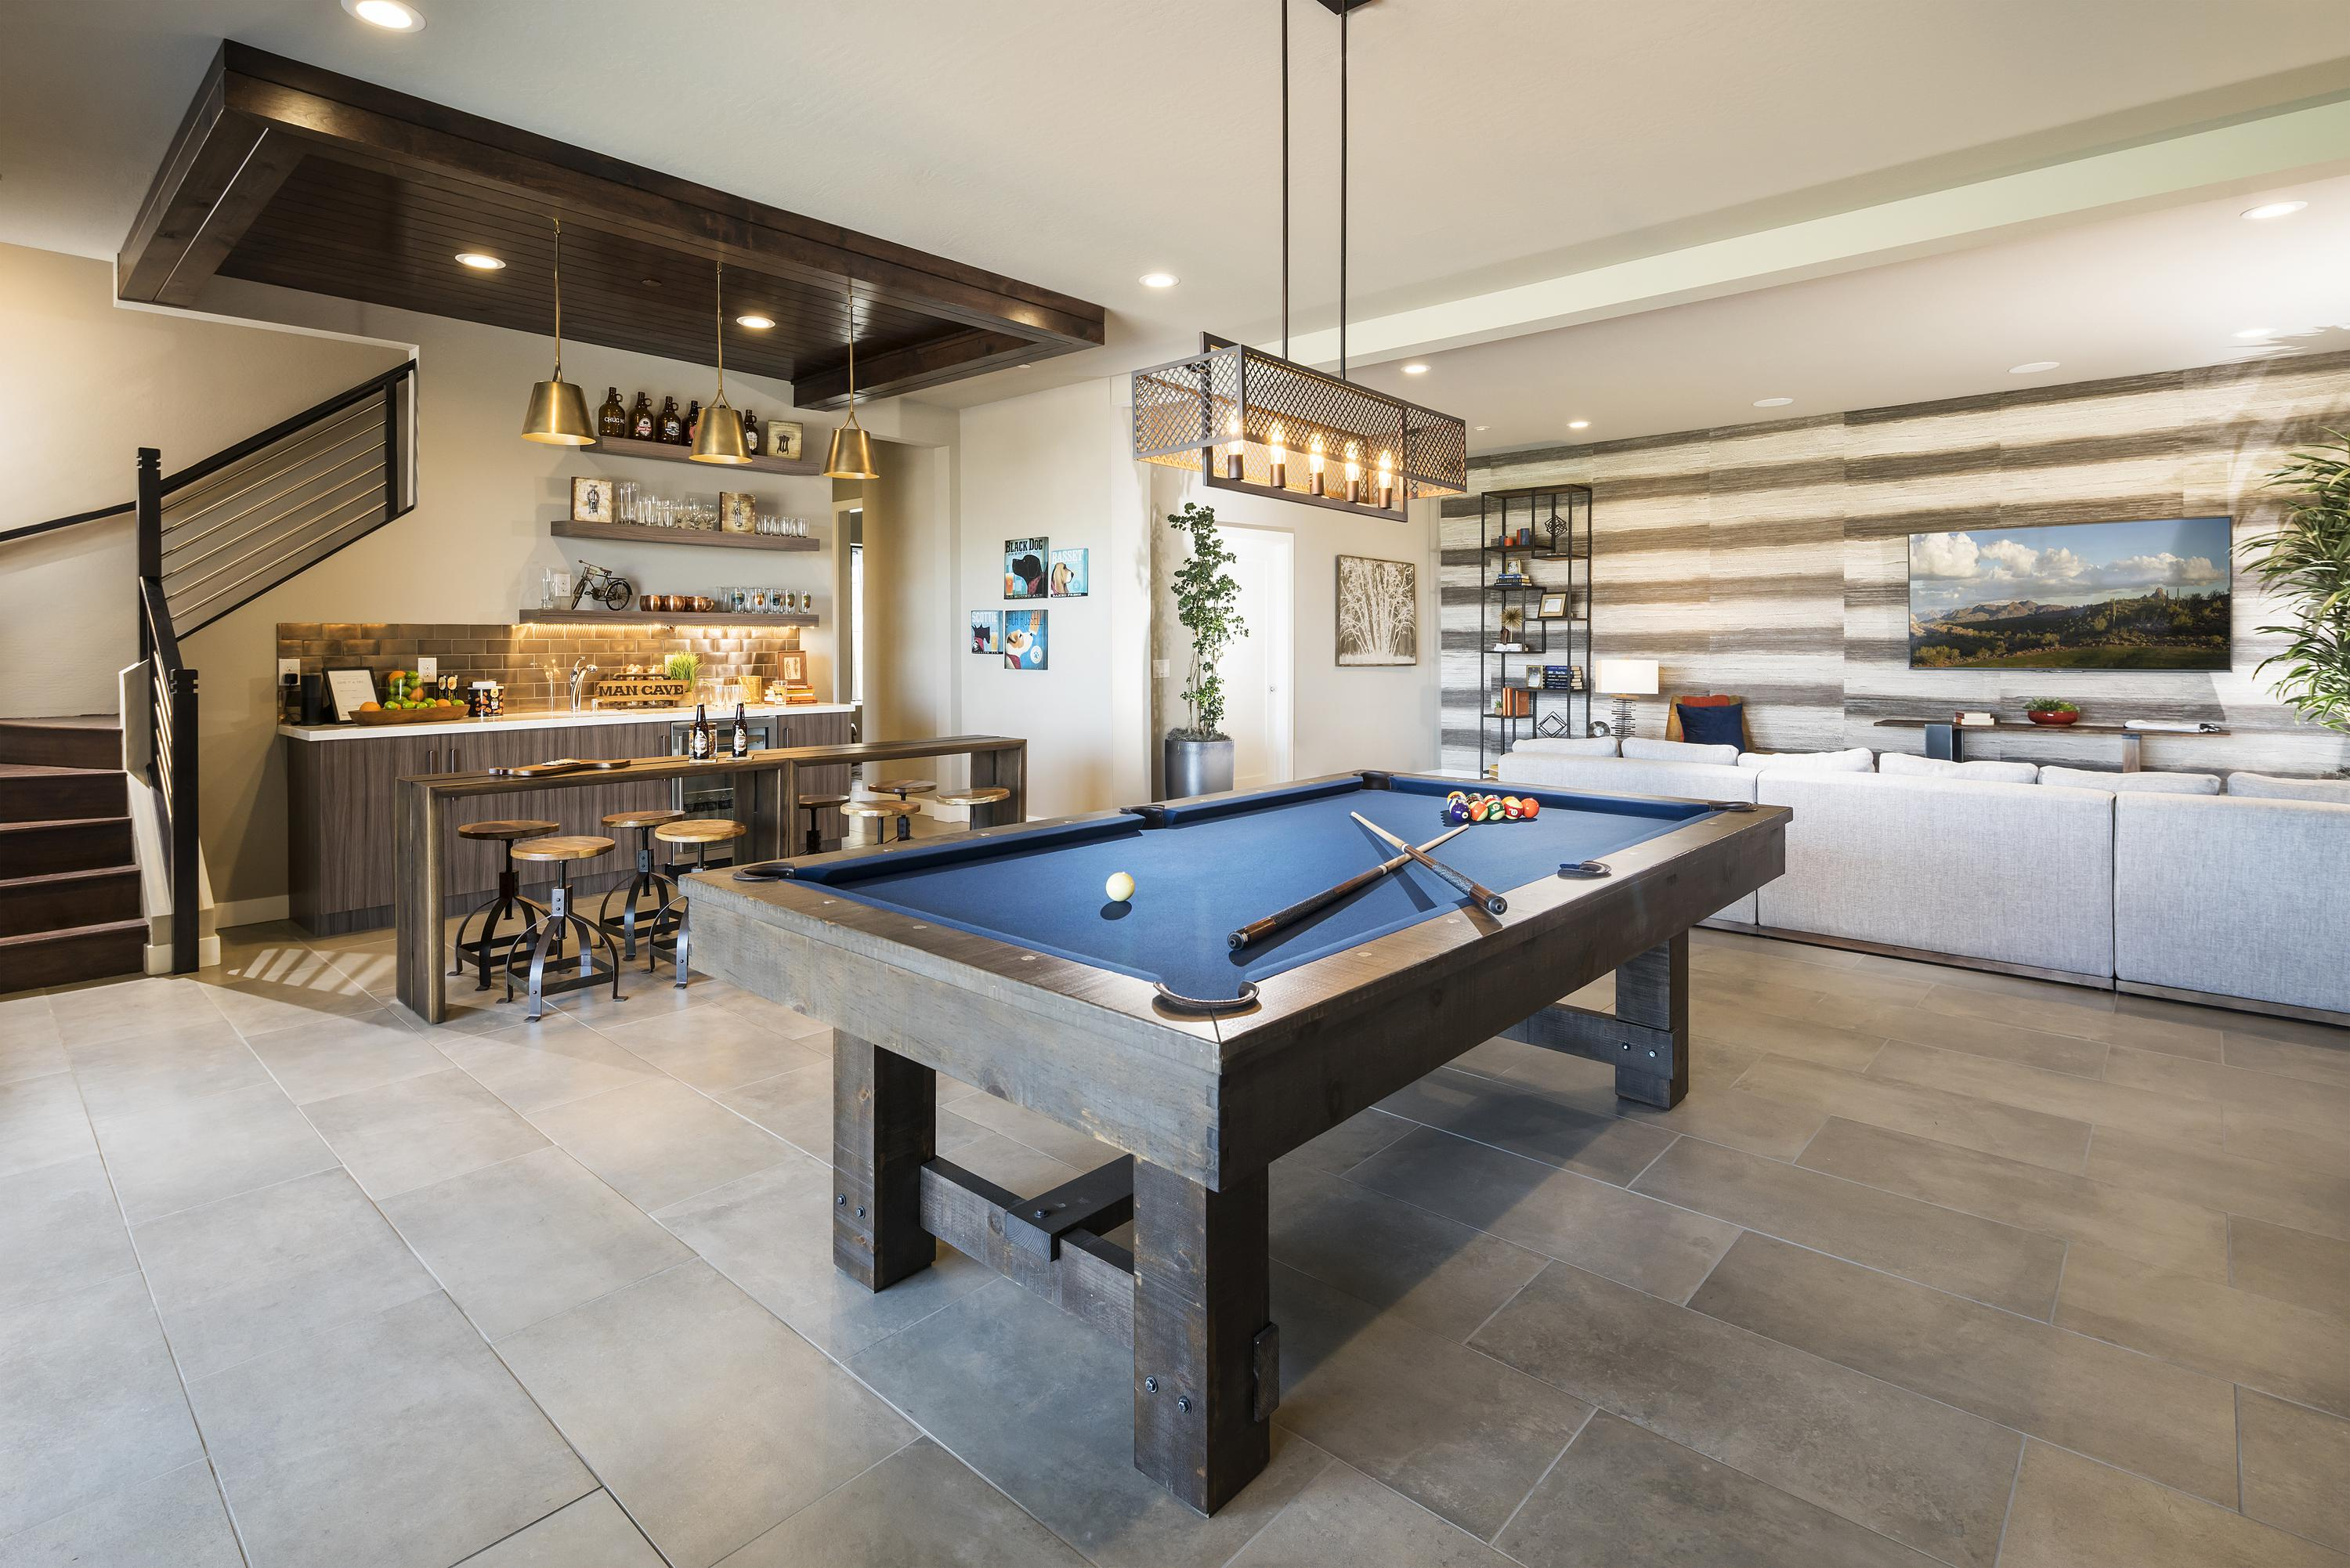 Game room with a bar perfect for hosting parties.